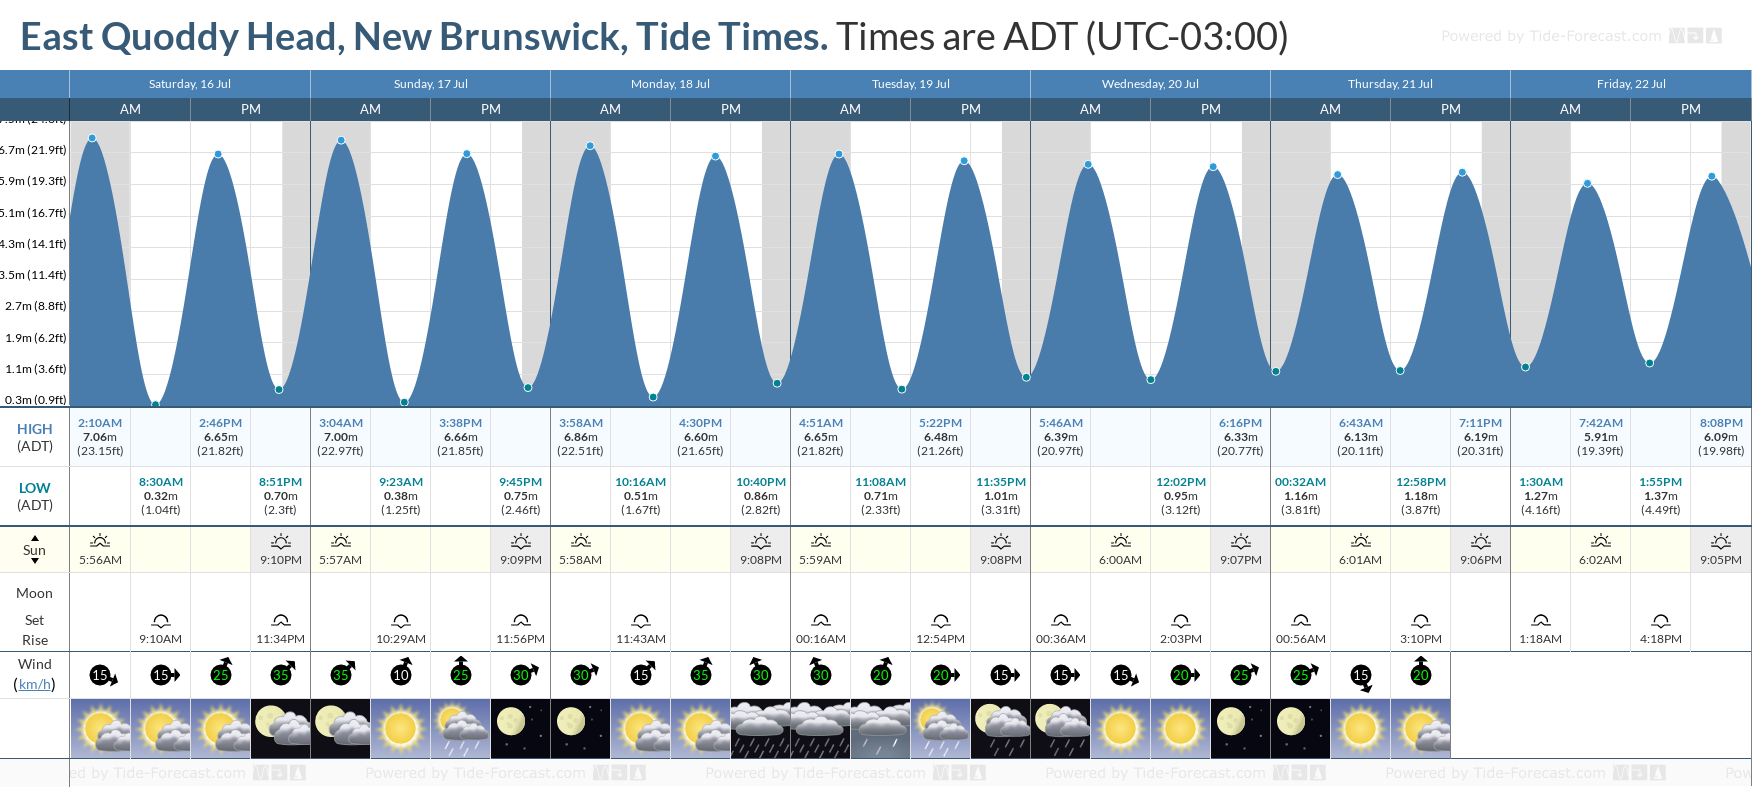 East Quoddy Head, New Brunswick Tide Chart including high and low tide tide times for the next 7 days